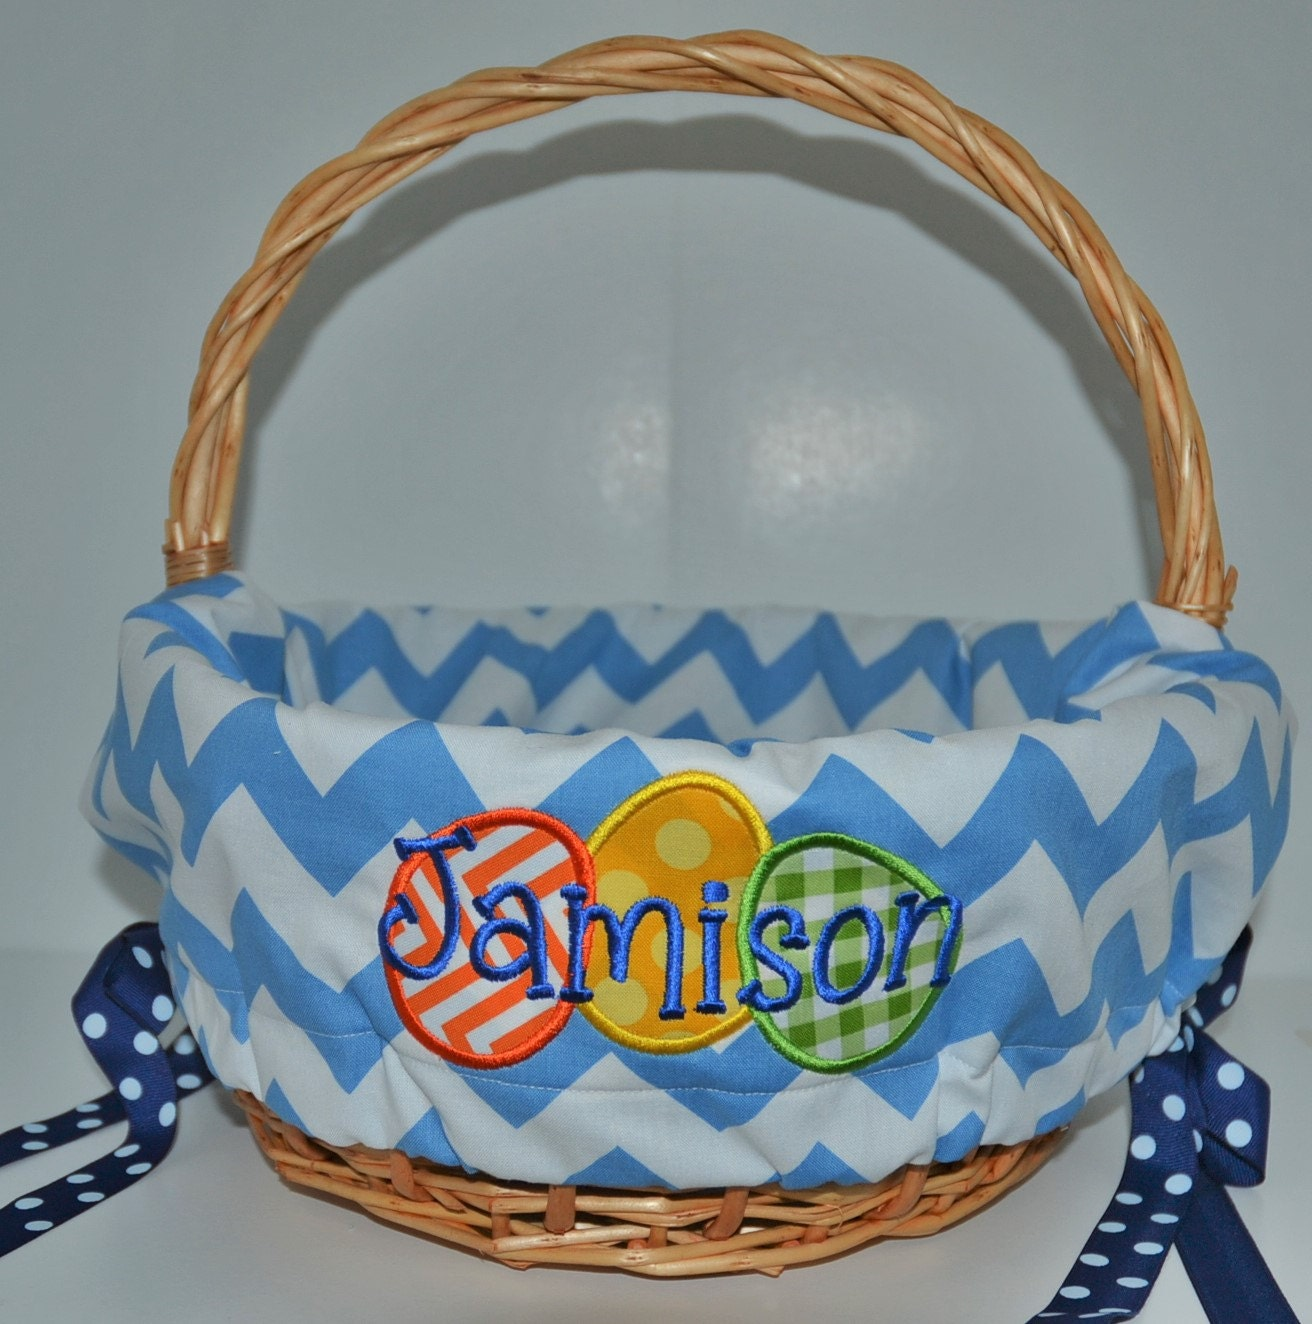 Personalized Easter Baskets With Personalized Basket Liner For